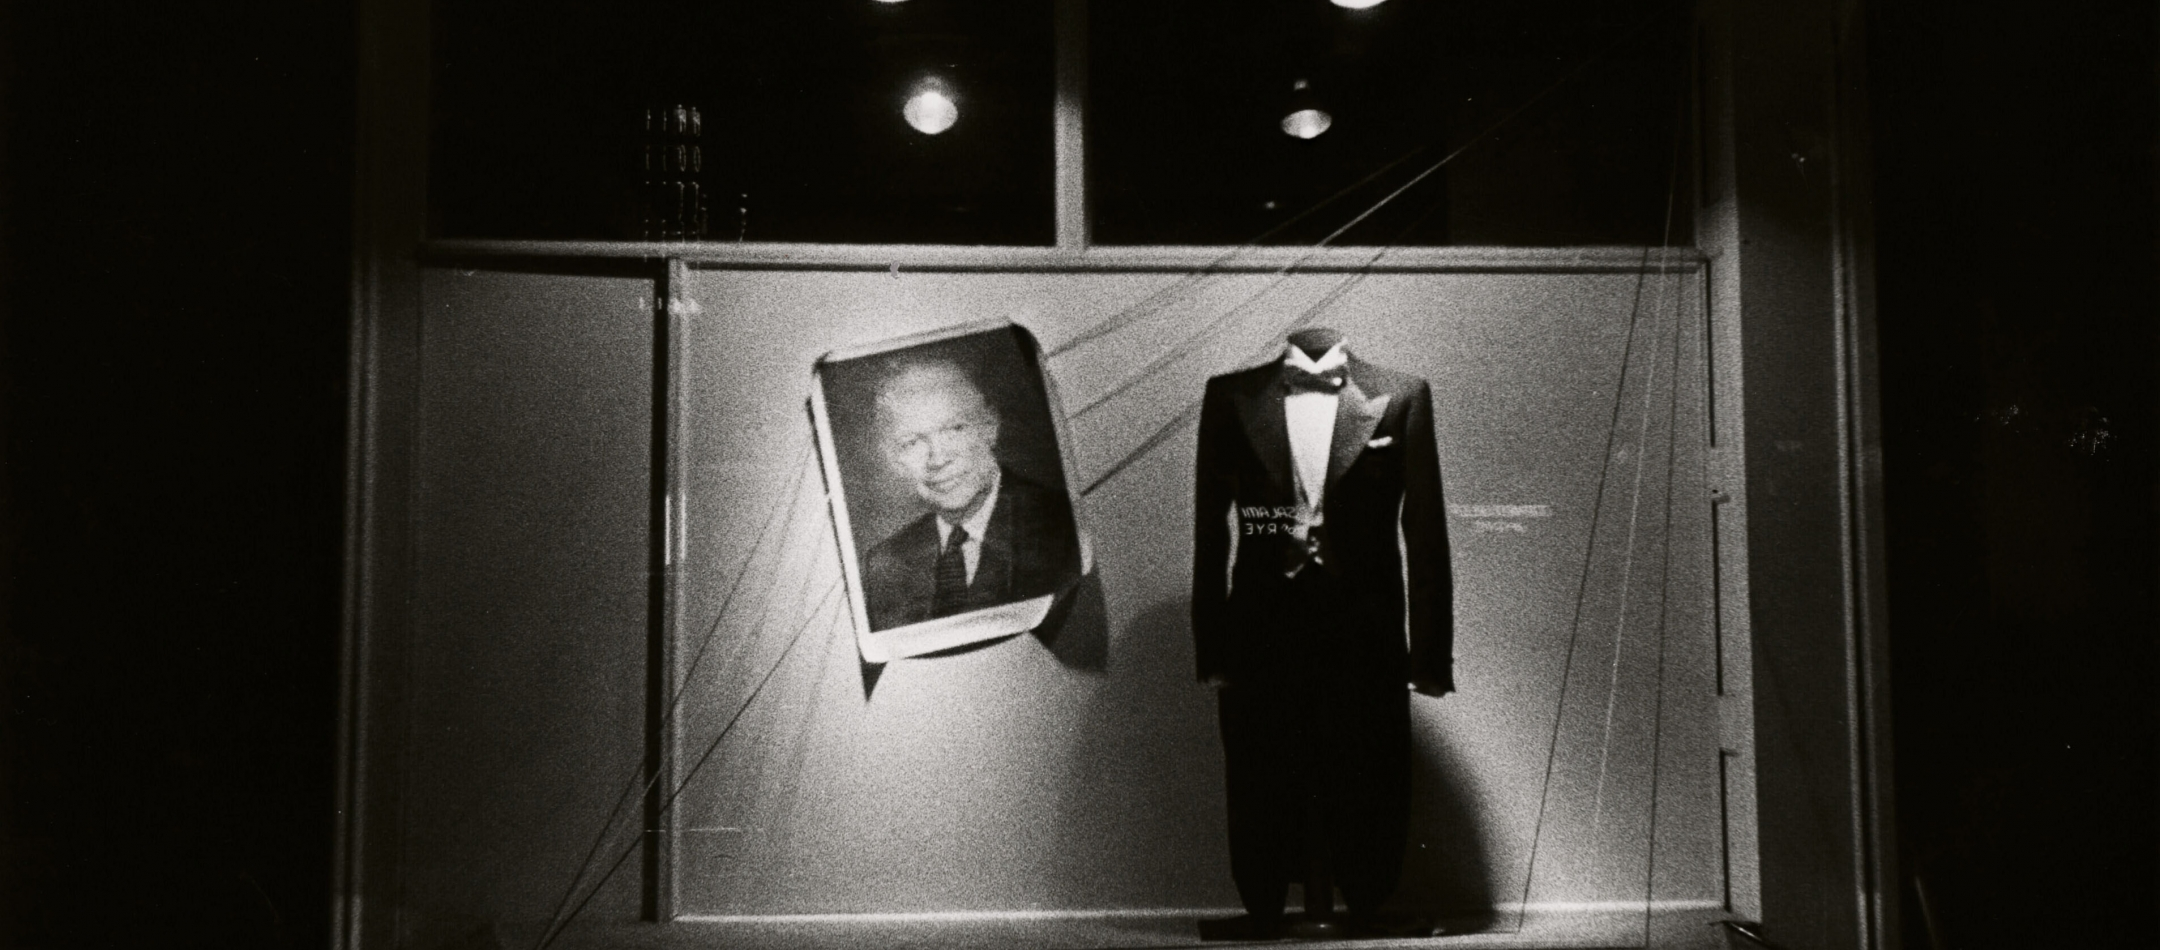 Art Basel | Miami Beach 2018